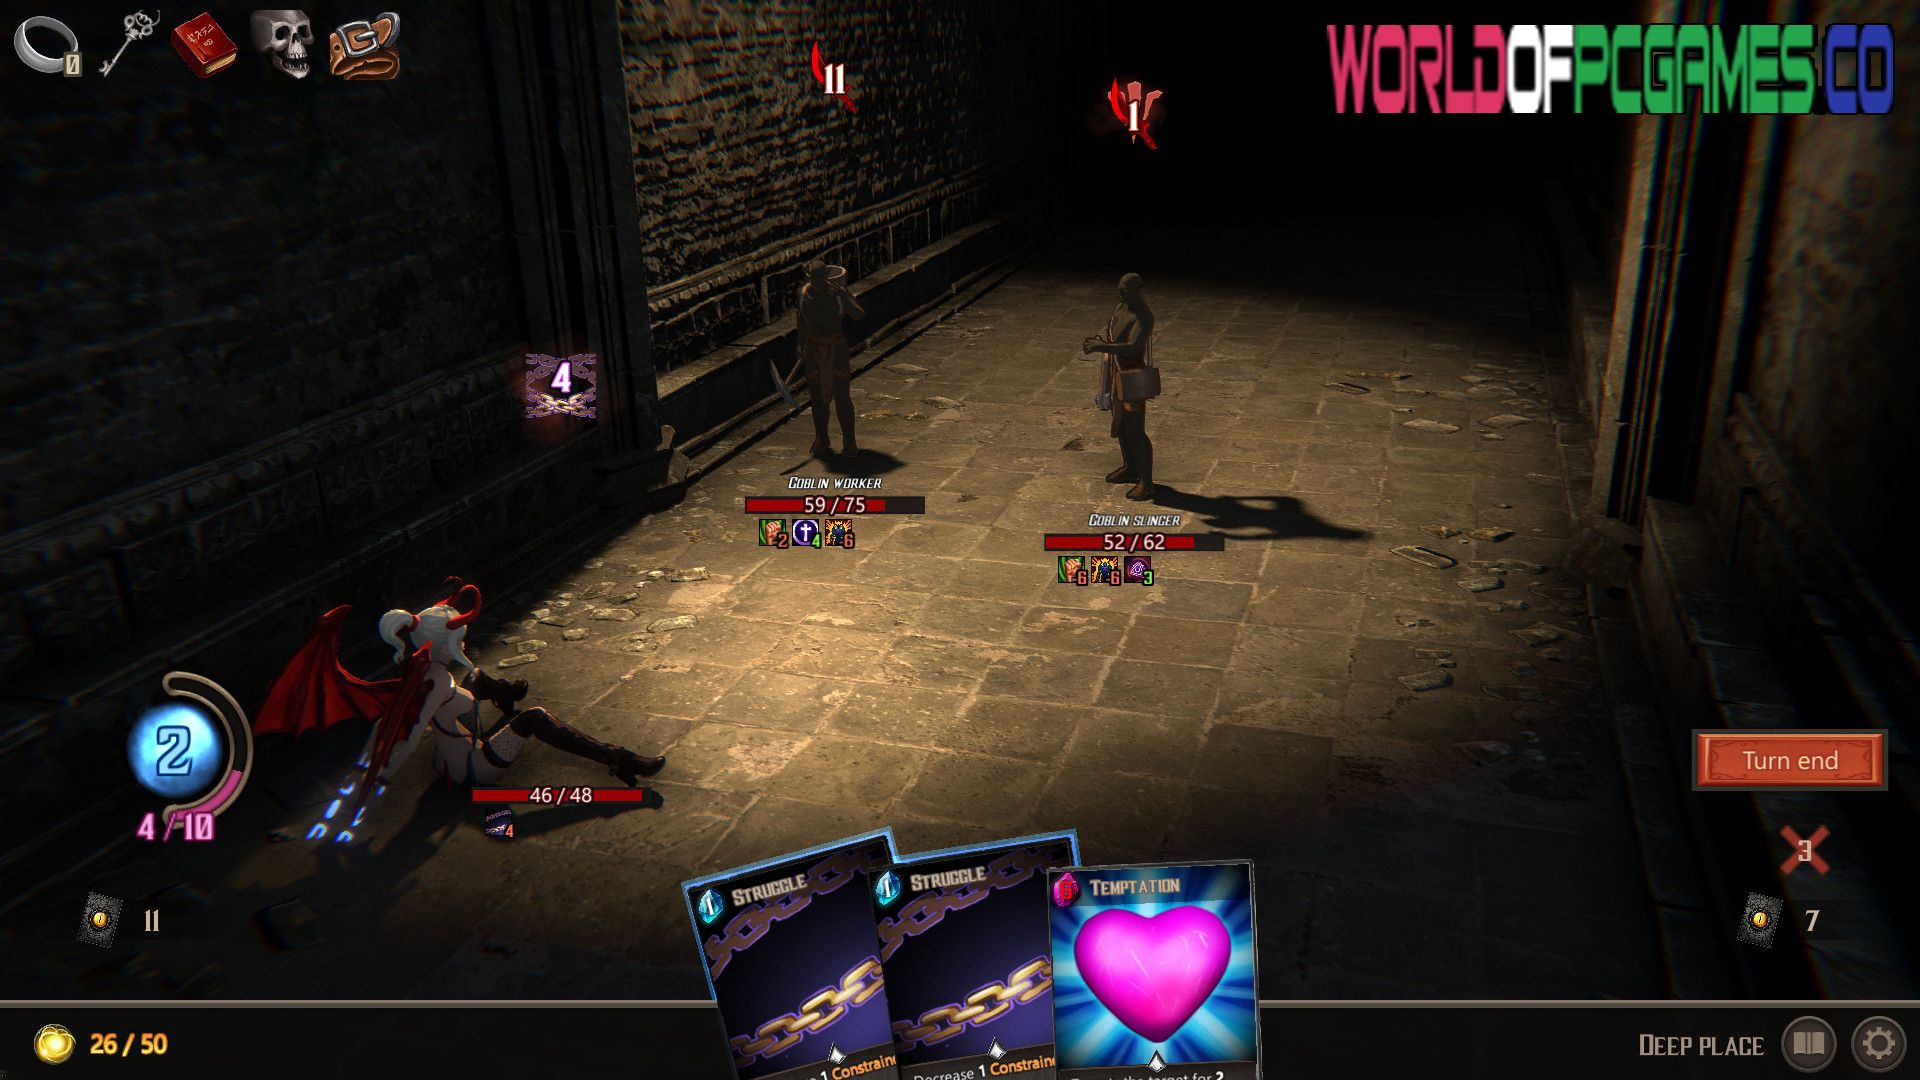 Last Evil Free Download PC Game By Worldofpcgames.co